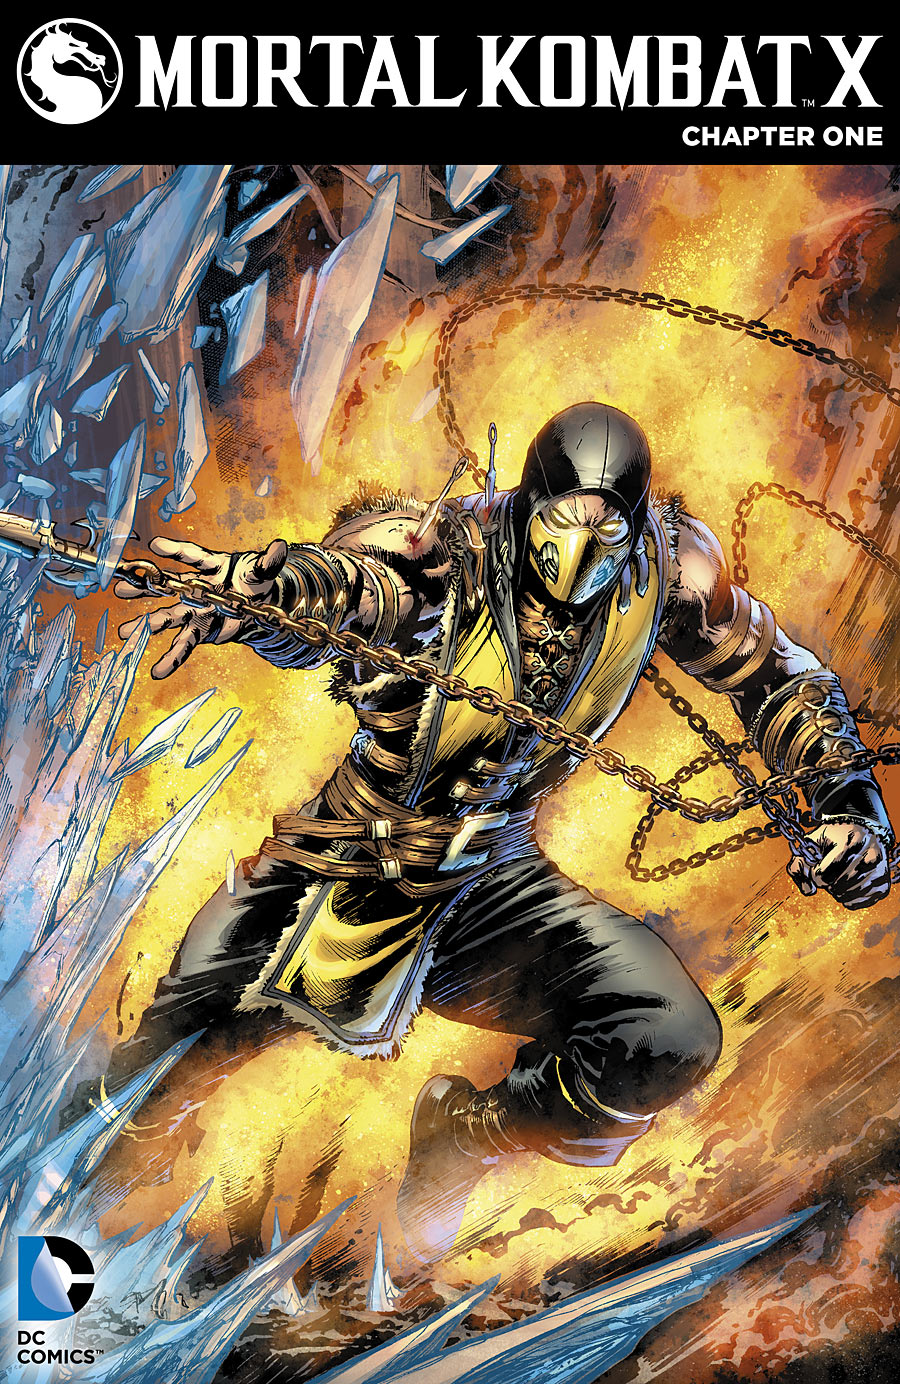 Cover from 'Mortal Kombat X'